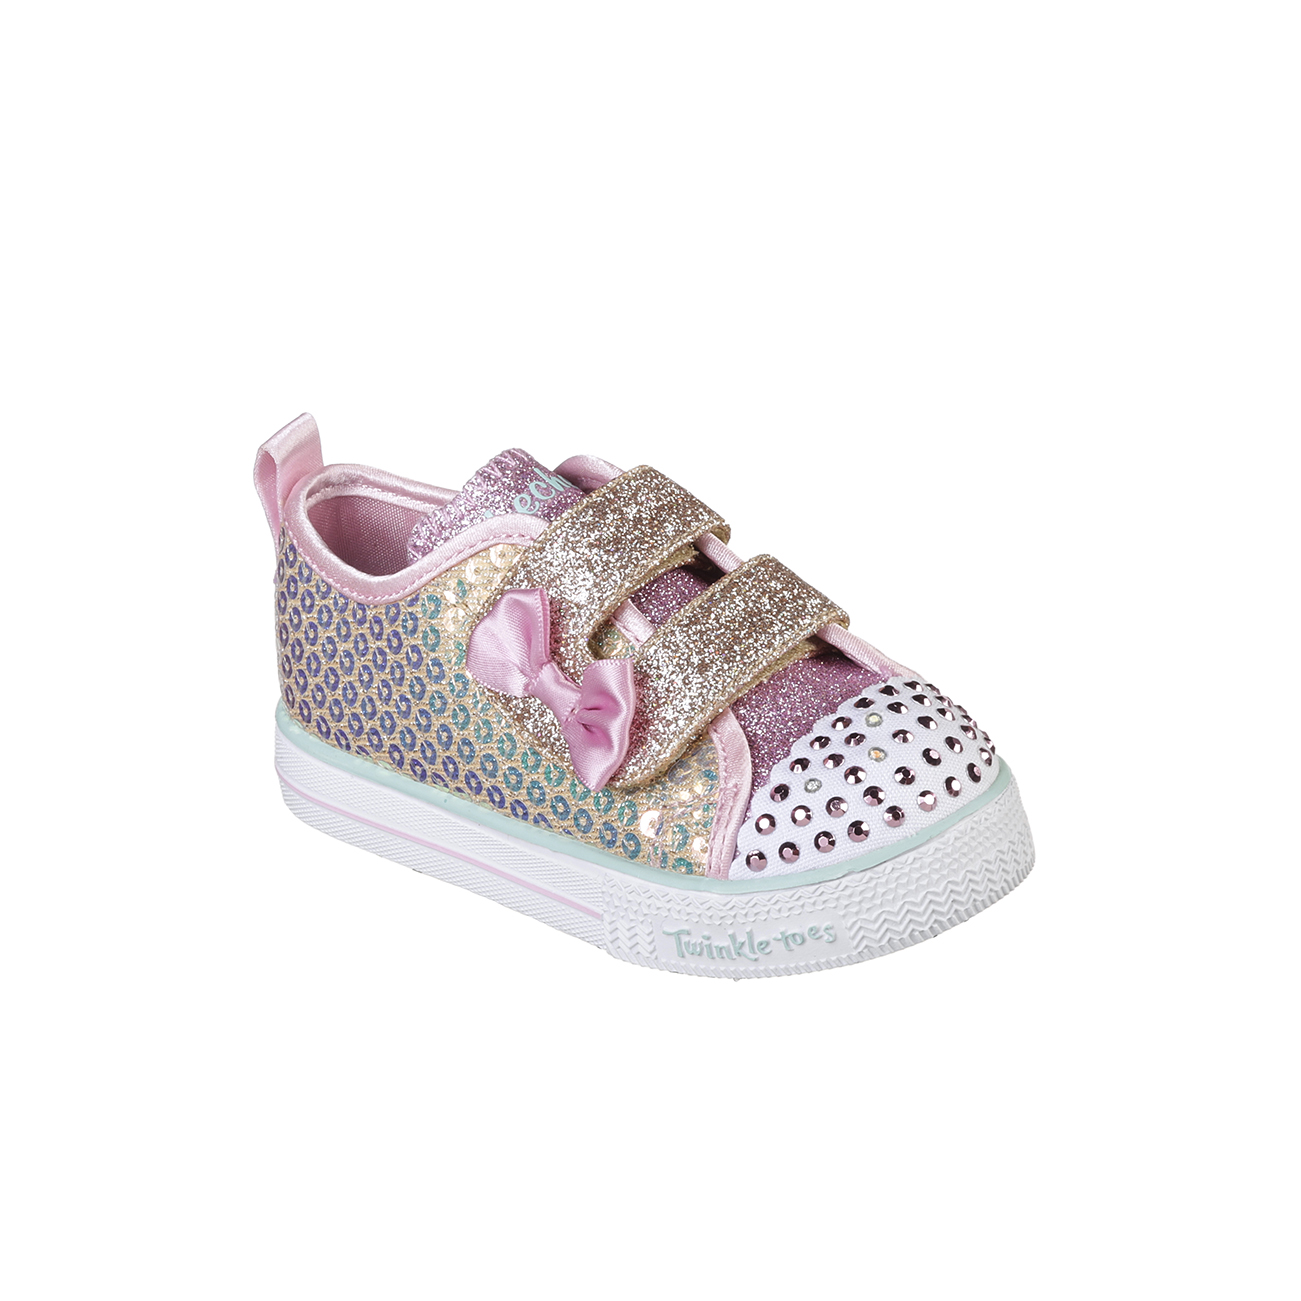 Kids Girls Infants Skechers Suffle Lite Mini Mermaid